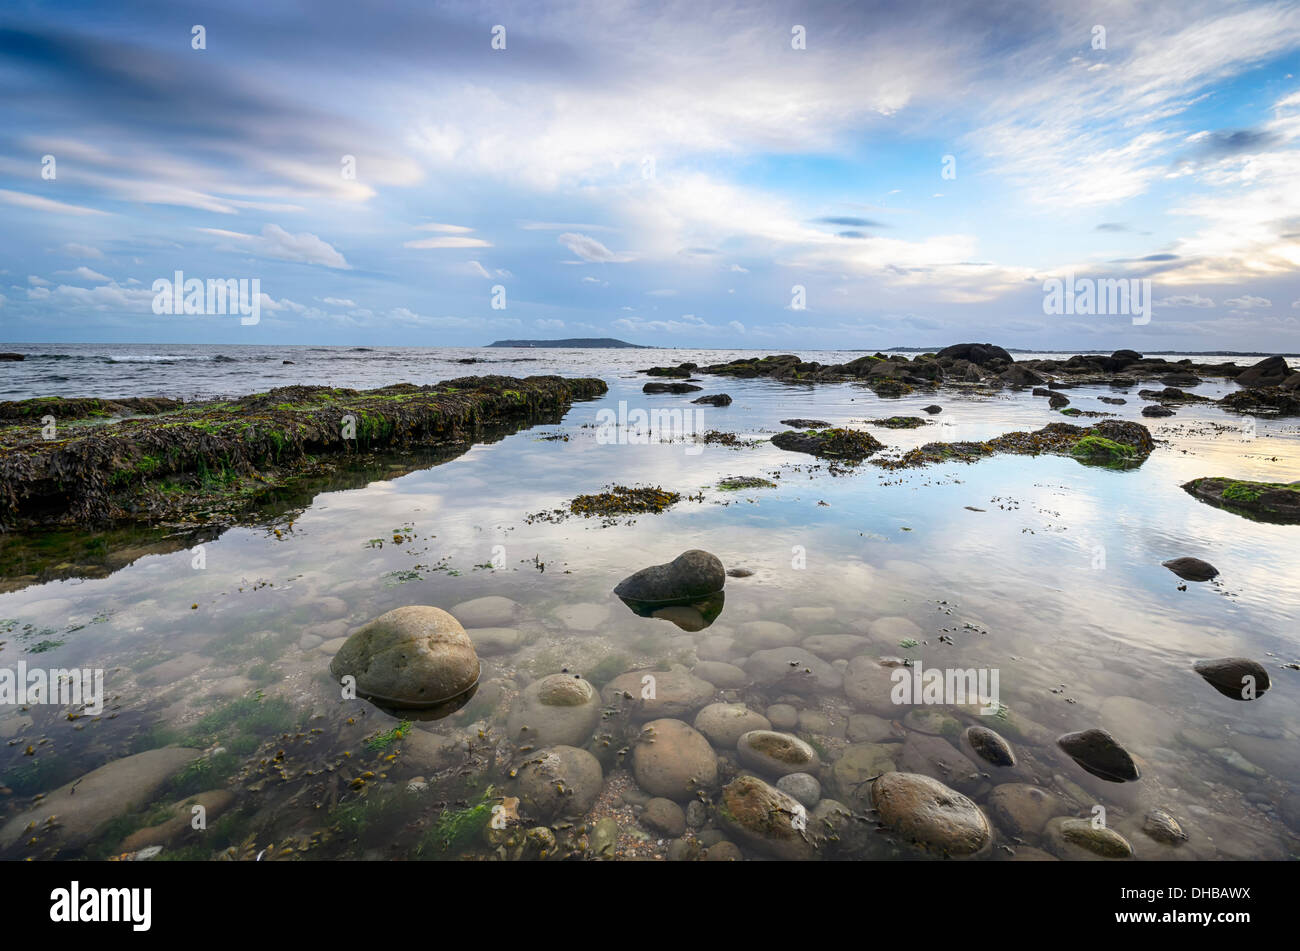 The beach at Osmington Mills near Weymouth in Dorset with the Isle of Portland on the horizon - Stock Image